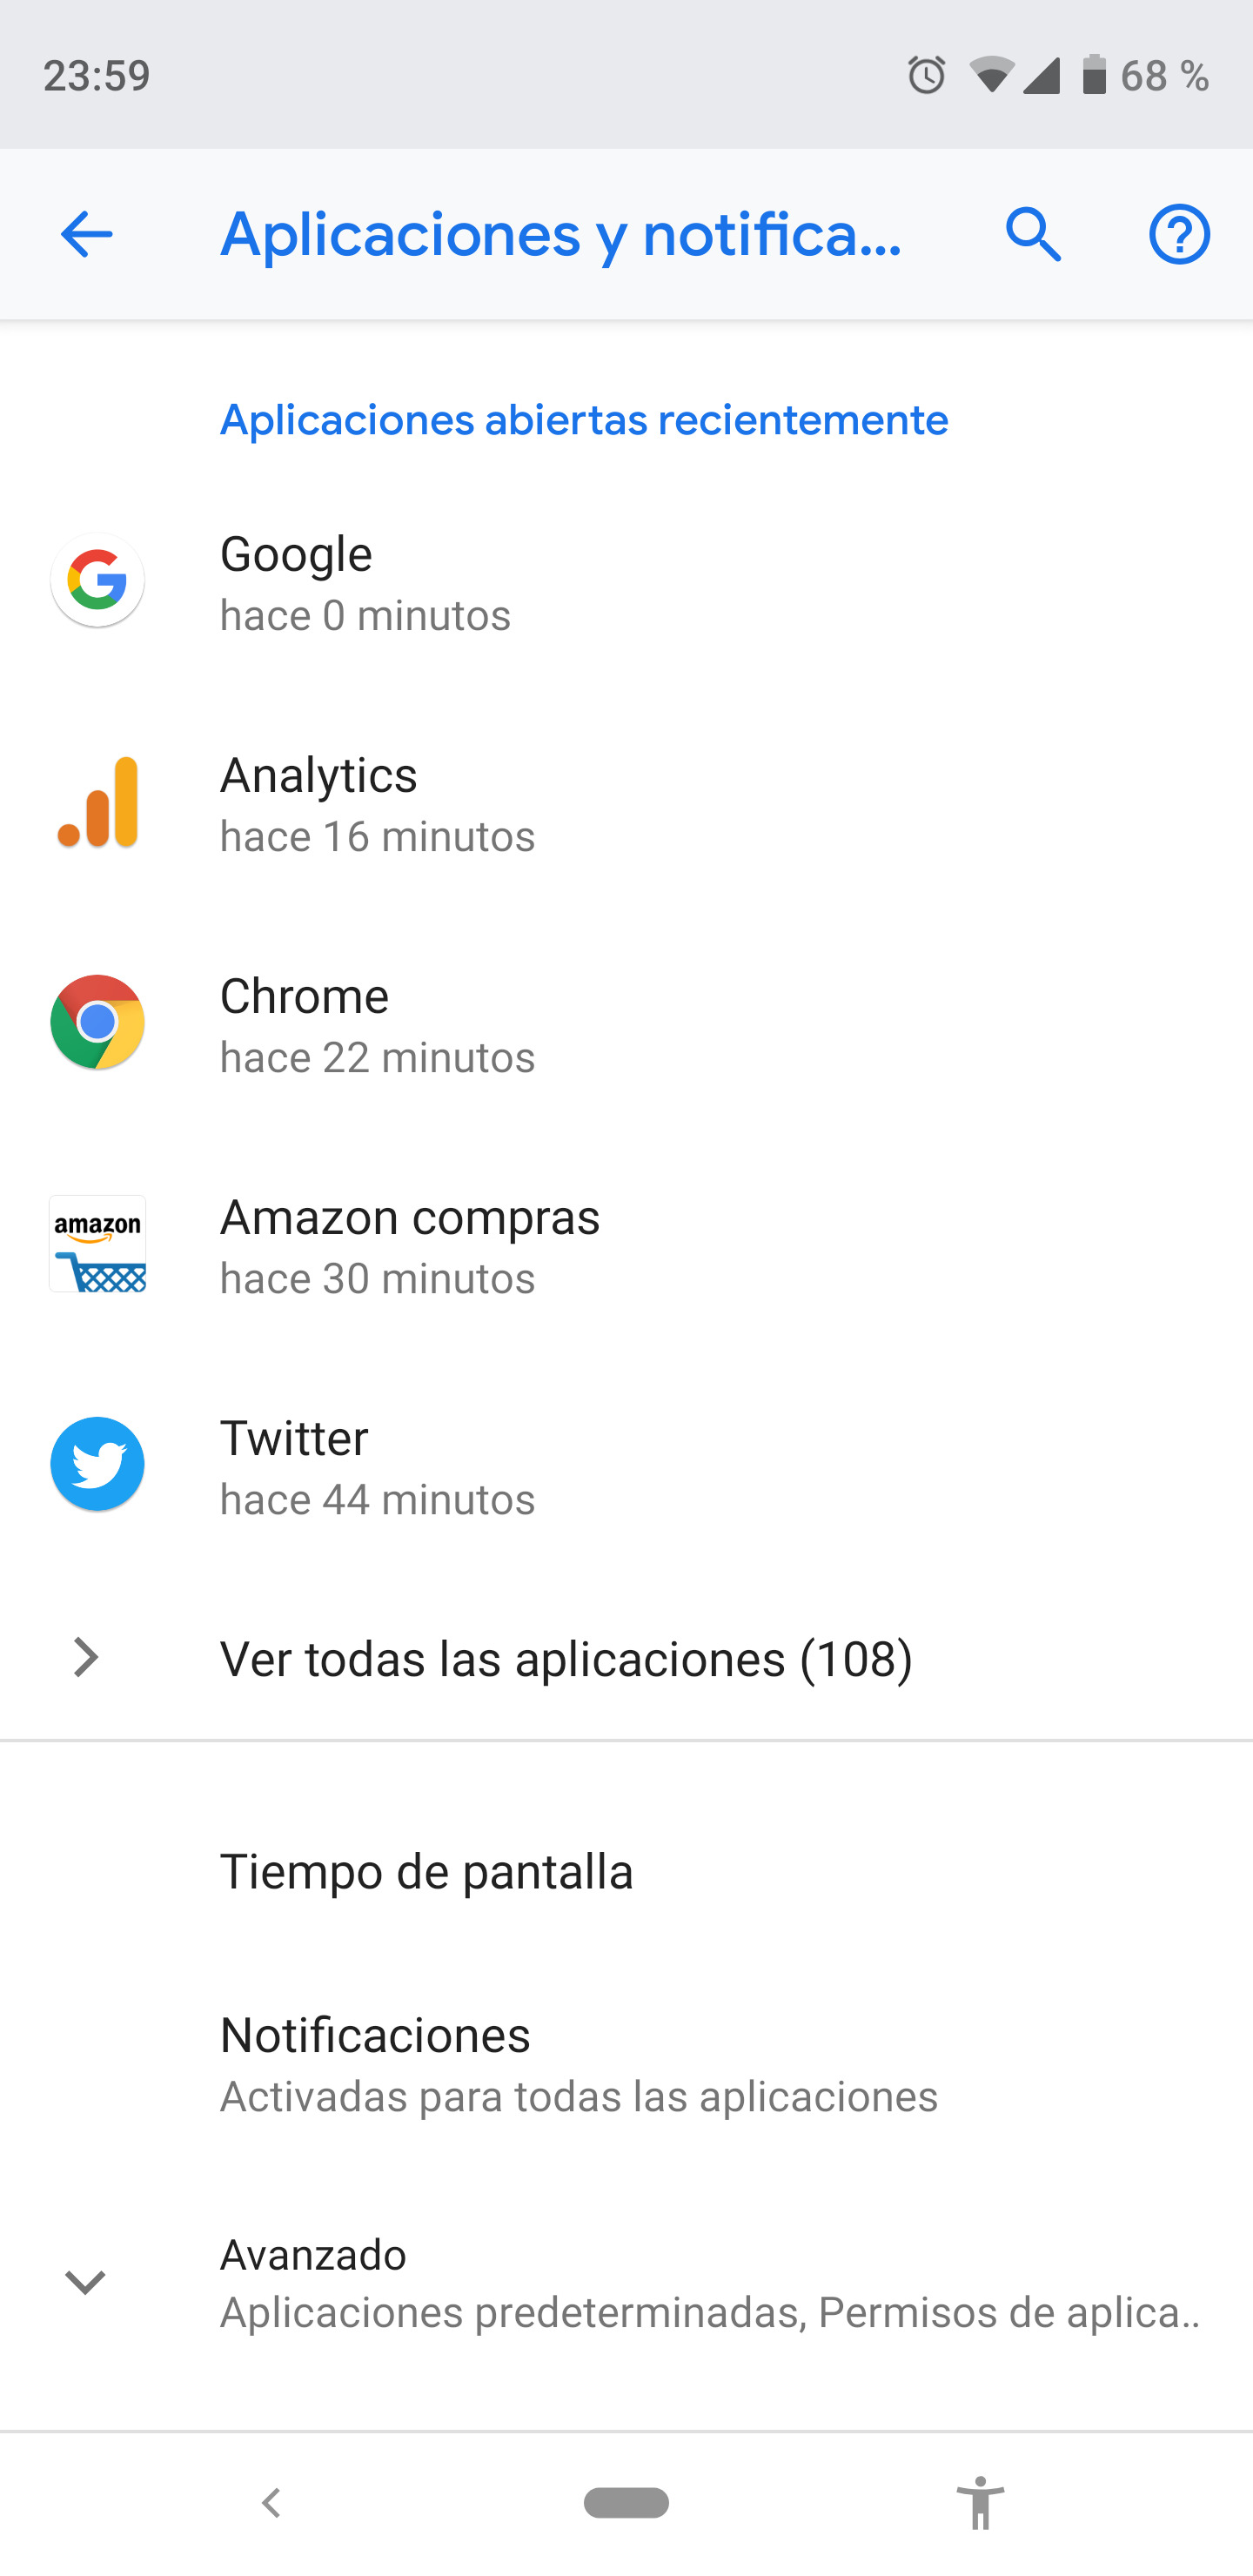 "Configuración del sistema operativo Android ""srcset ="" https://tech-blogs.com/wp-content/uploads/2019/08/1565487432_432_Give-a-new-look-to-your-Android-Change-the-Launcher.jpg 1440w, https://geeknivelsuperior.com / wp-content / uploads / 2019/07 / Settings-Android-234x480.jpg 234w, https://geeknivelsuperior.com/wp-content/uploads/2019/07/Adjust-Android-768x1579.jpg 768w ""tamaños ="" (ancho máximo: 1440px) 100vw, 1440px"